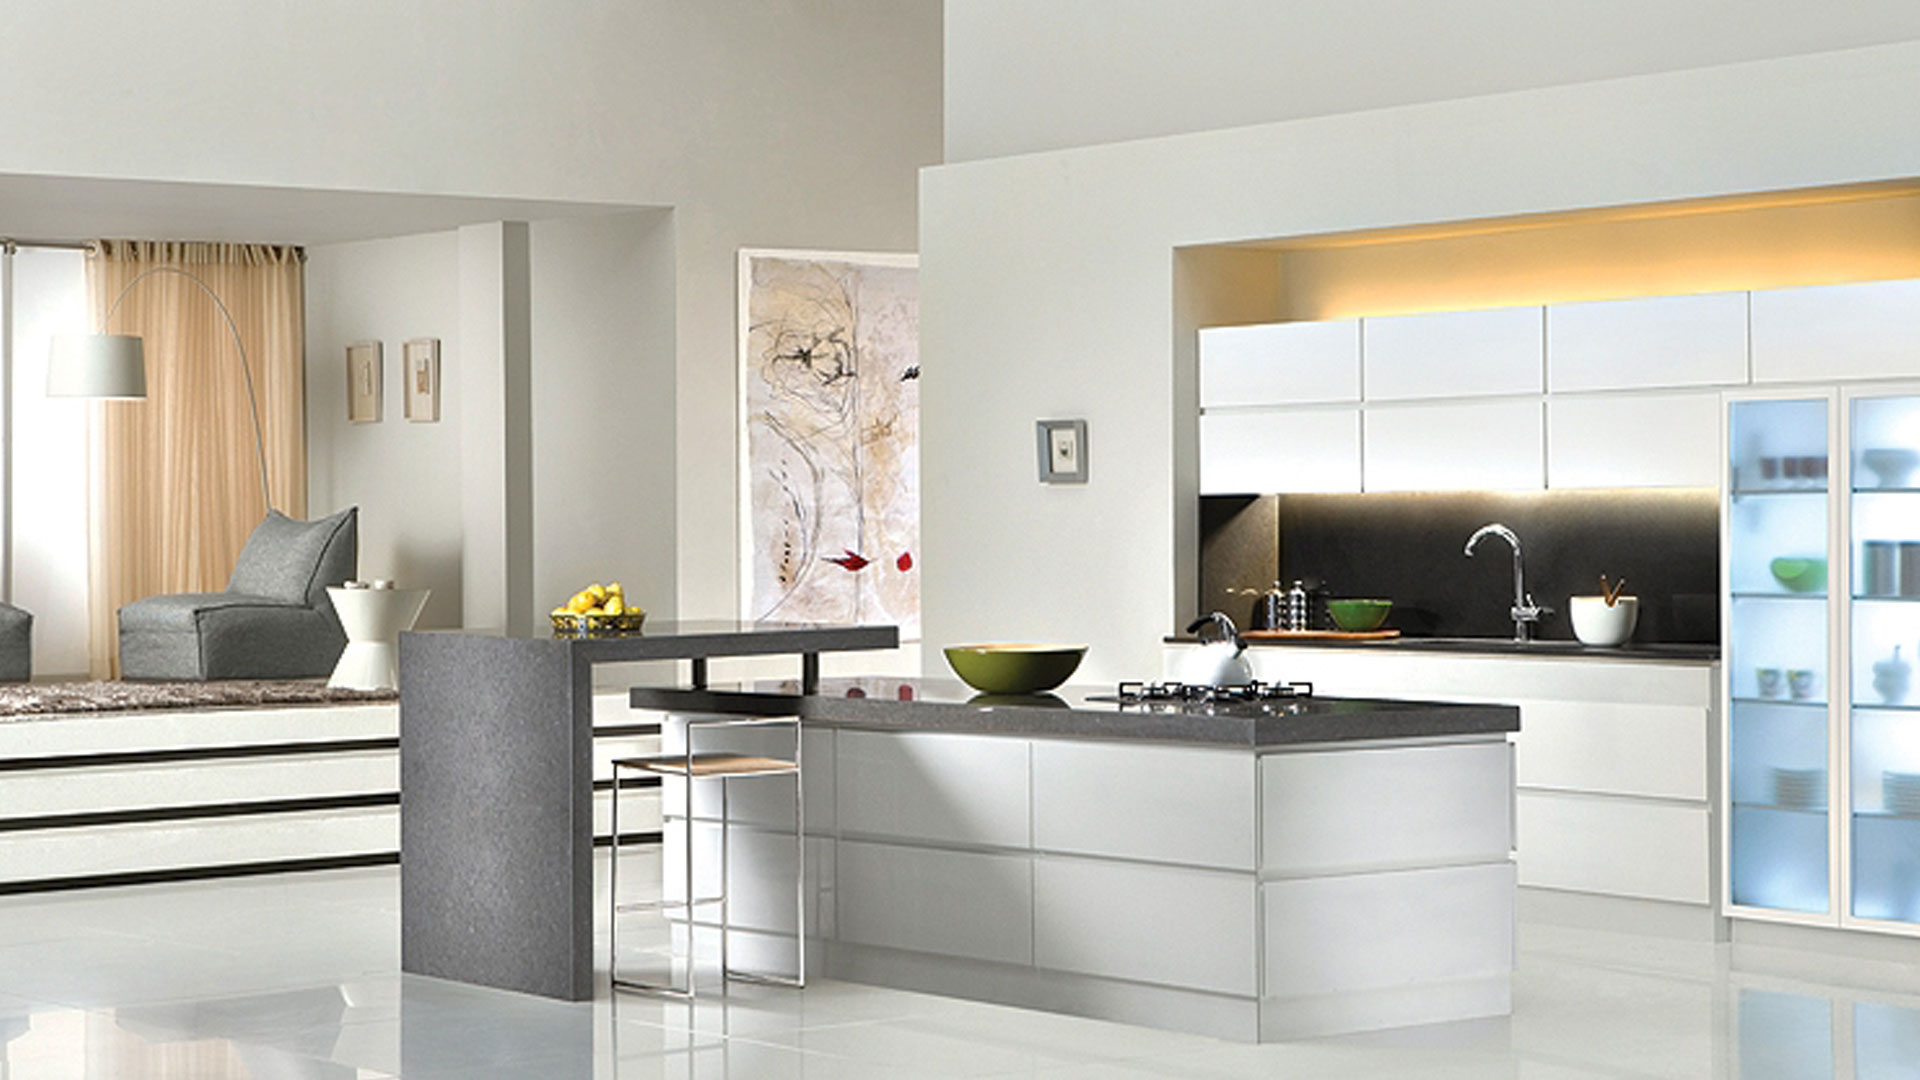 Amazing Kitchen Interior Design Trends 2015 1920 x 1080 · 205 kB · jpeg